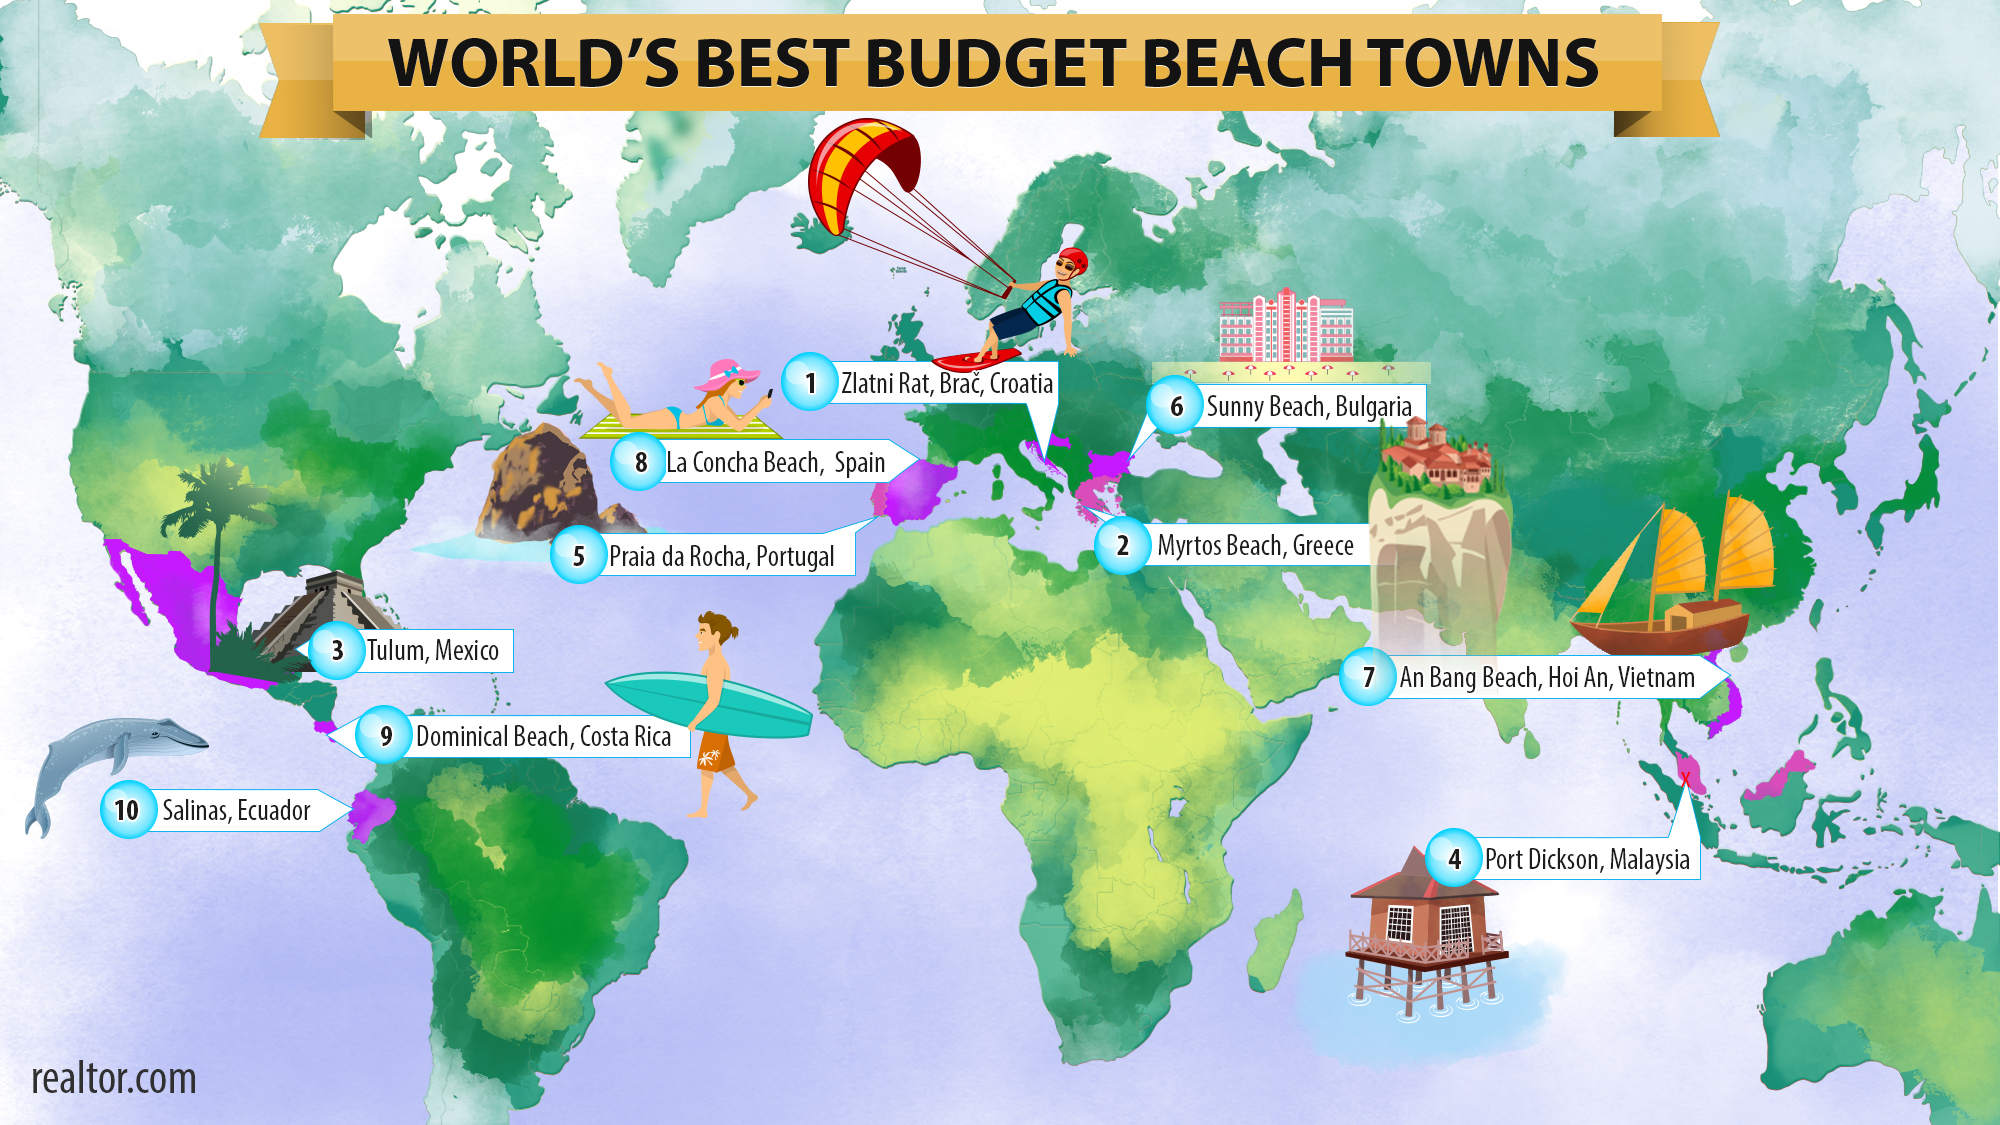 Sunny Beach ranked 6th by Realtorcom for most affordable